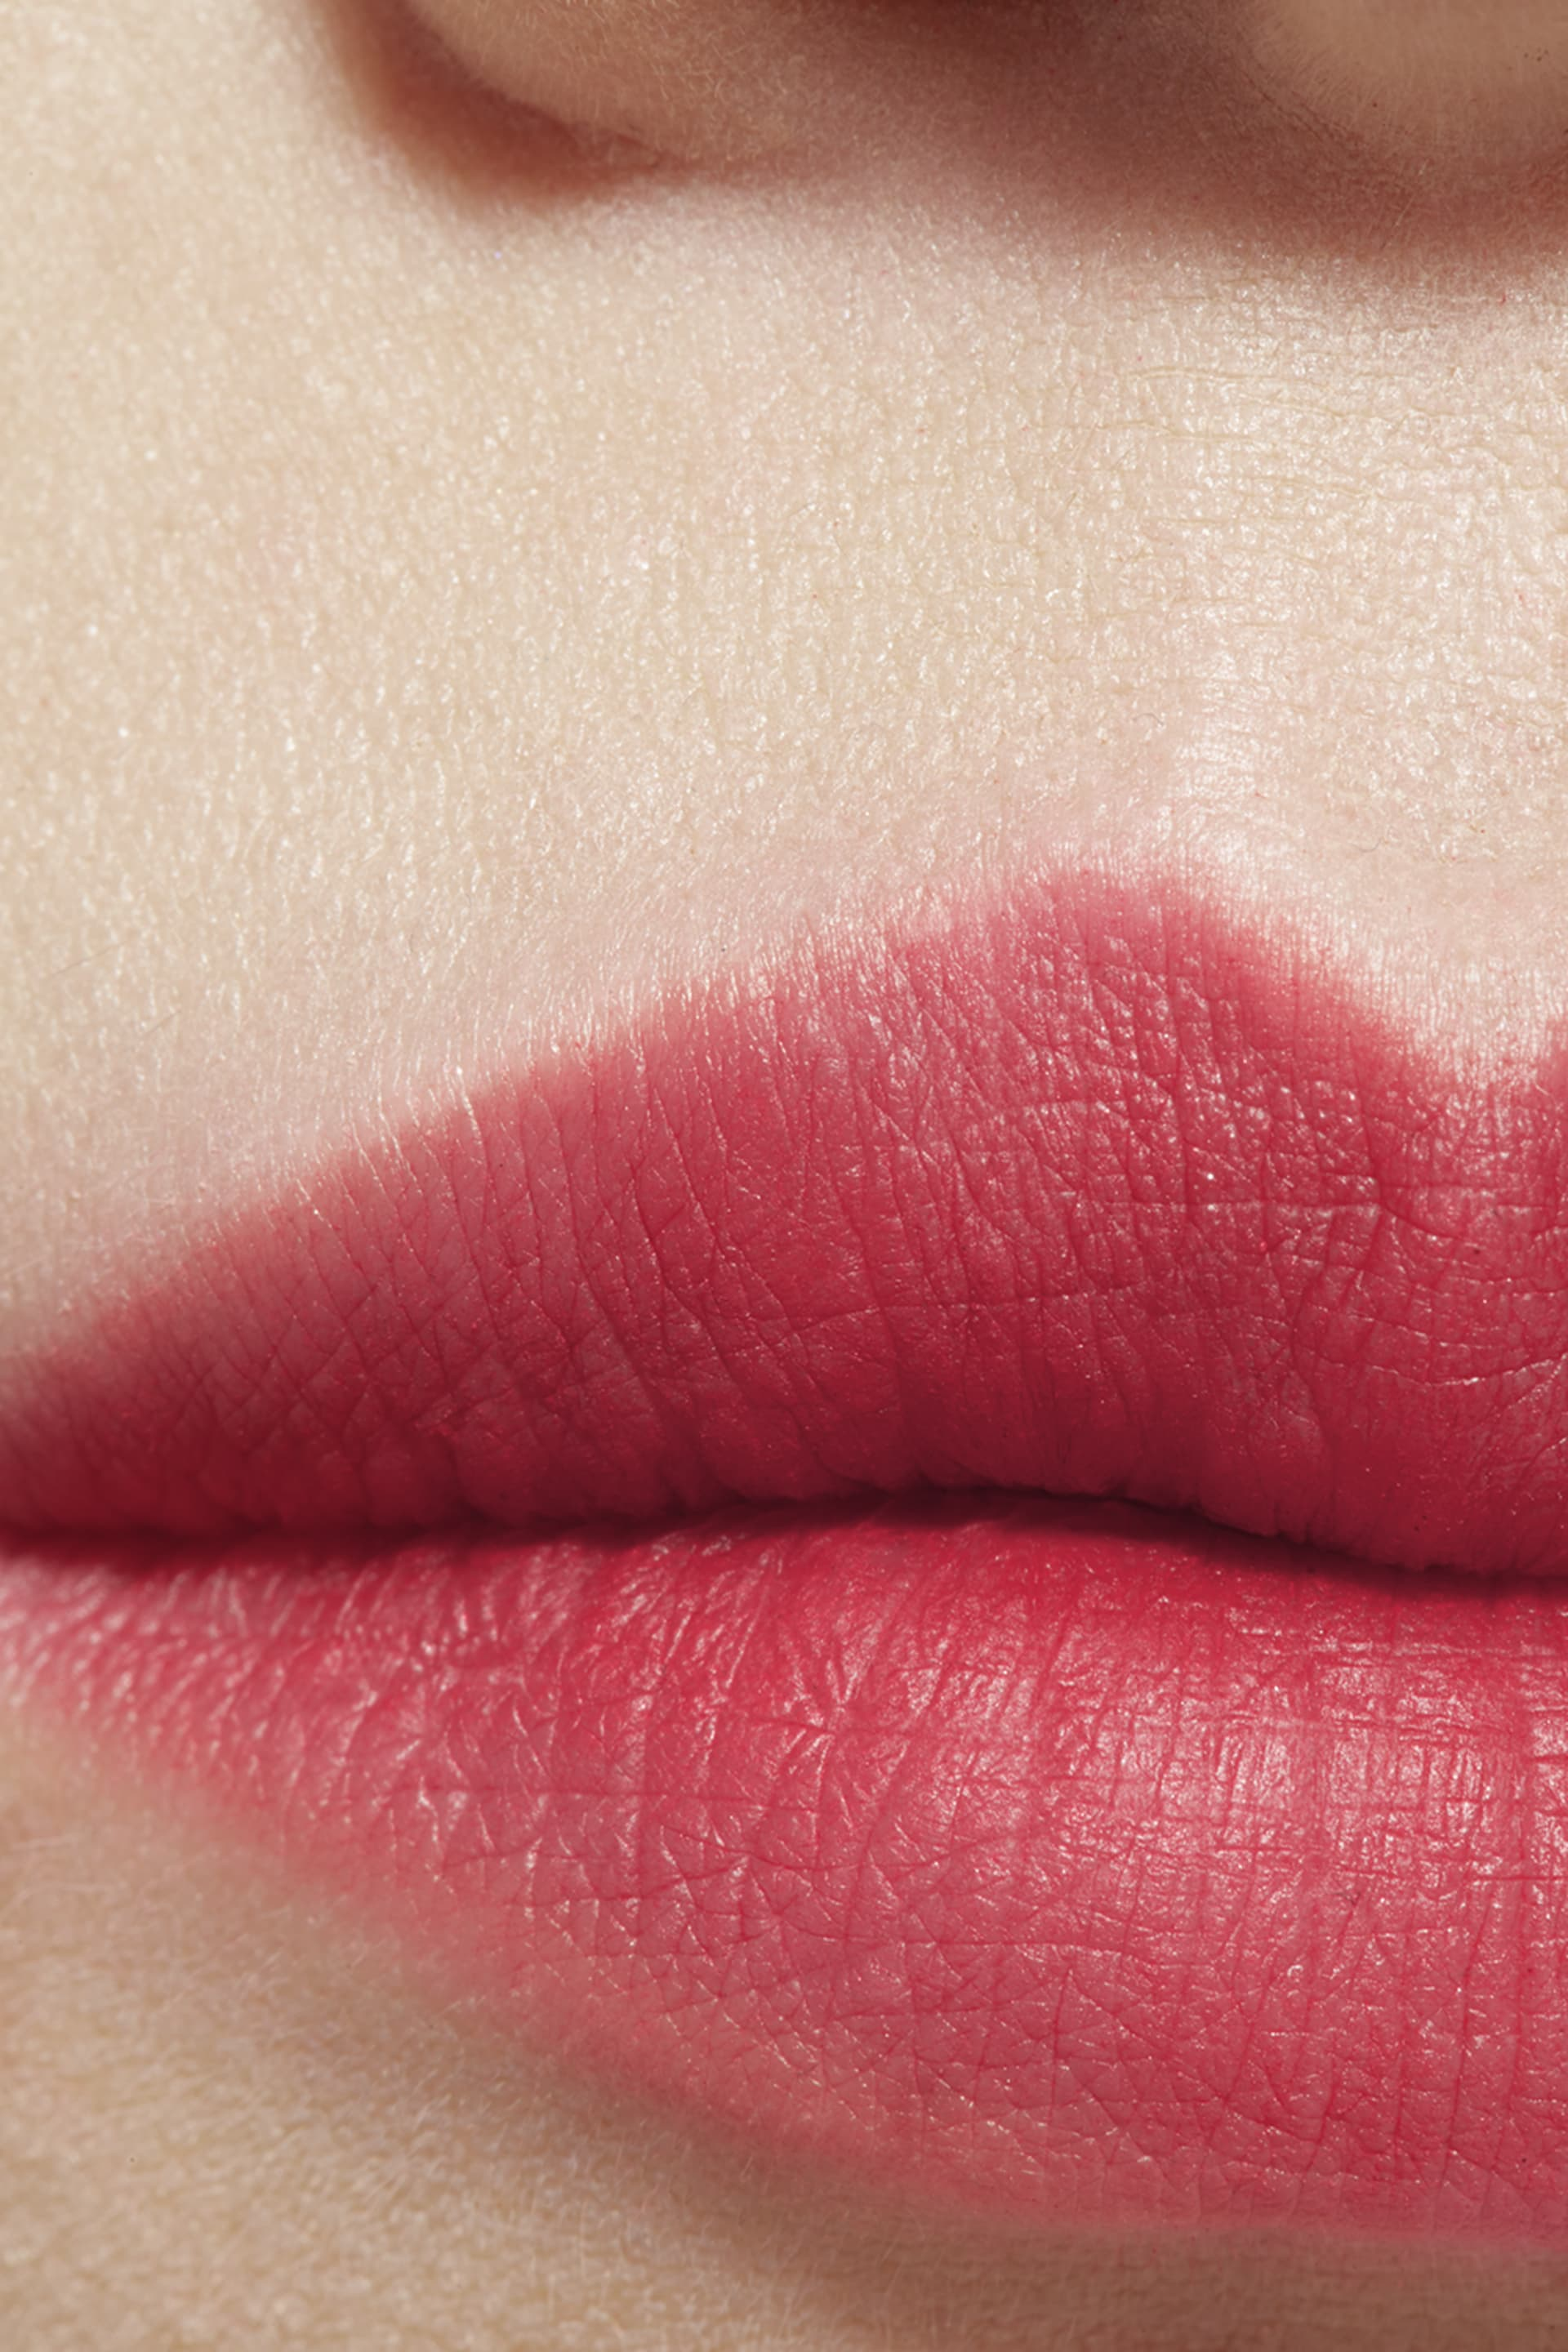 Application makeup visual 1 - ROUGE COCO LIP BLUSH 416 - TEASING PINK